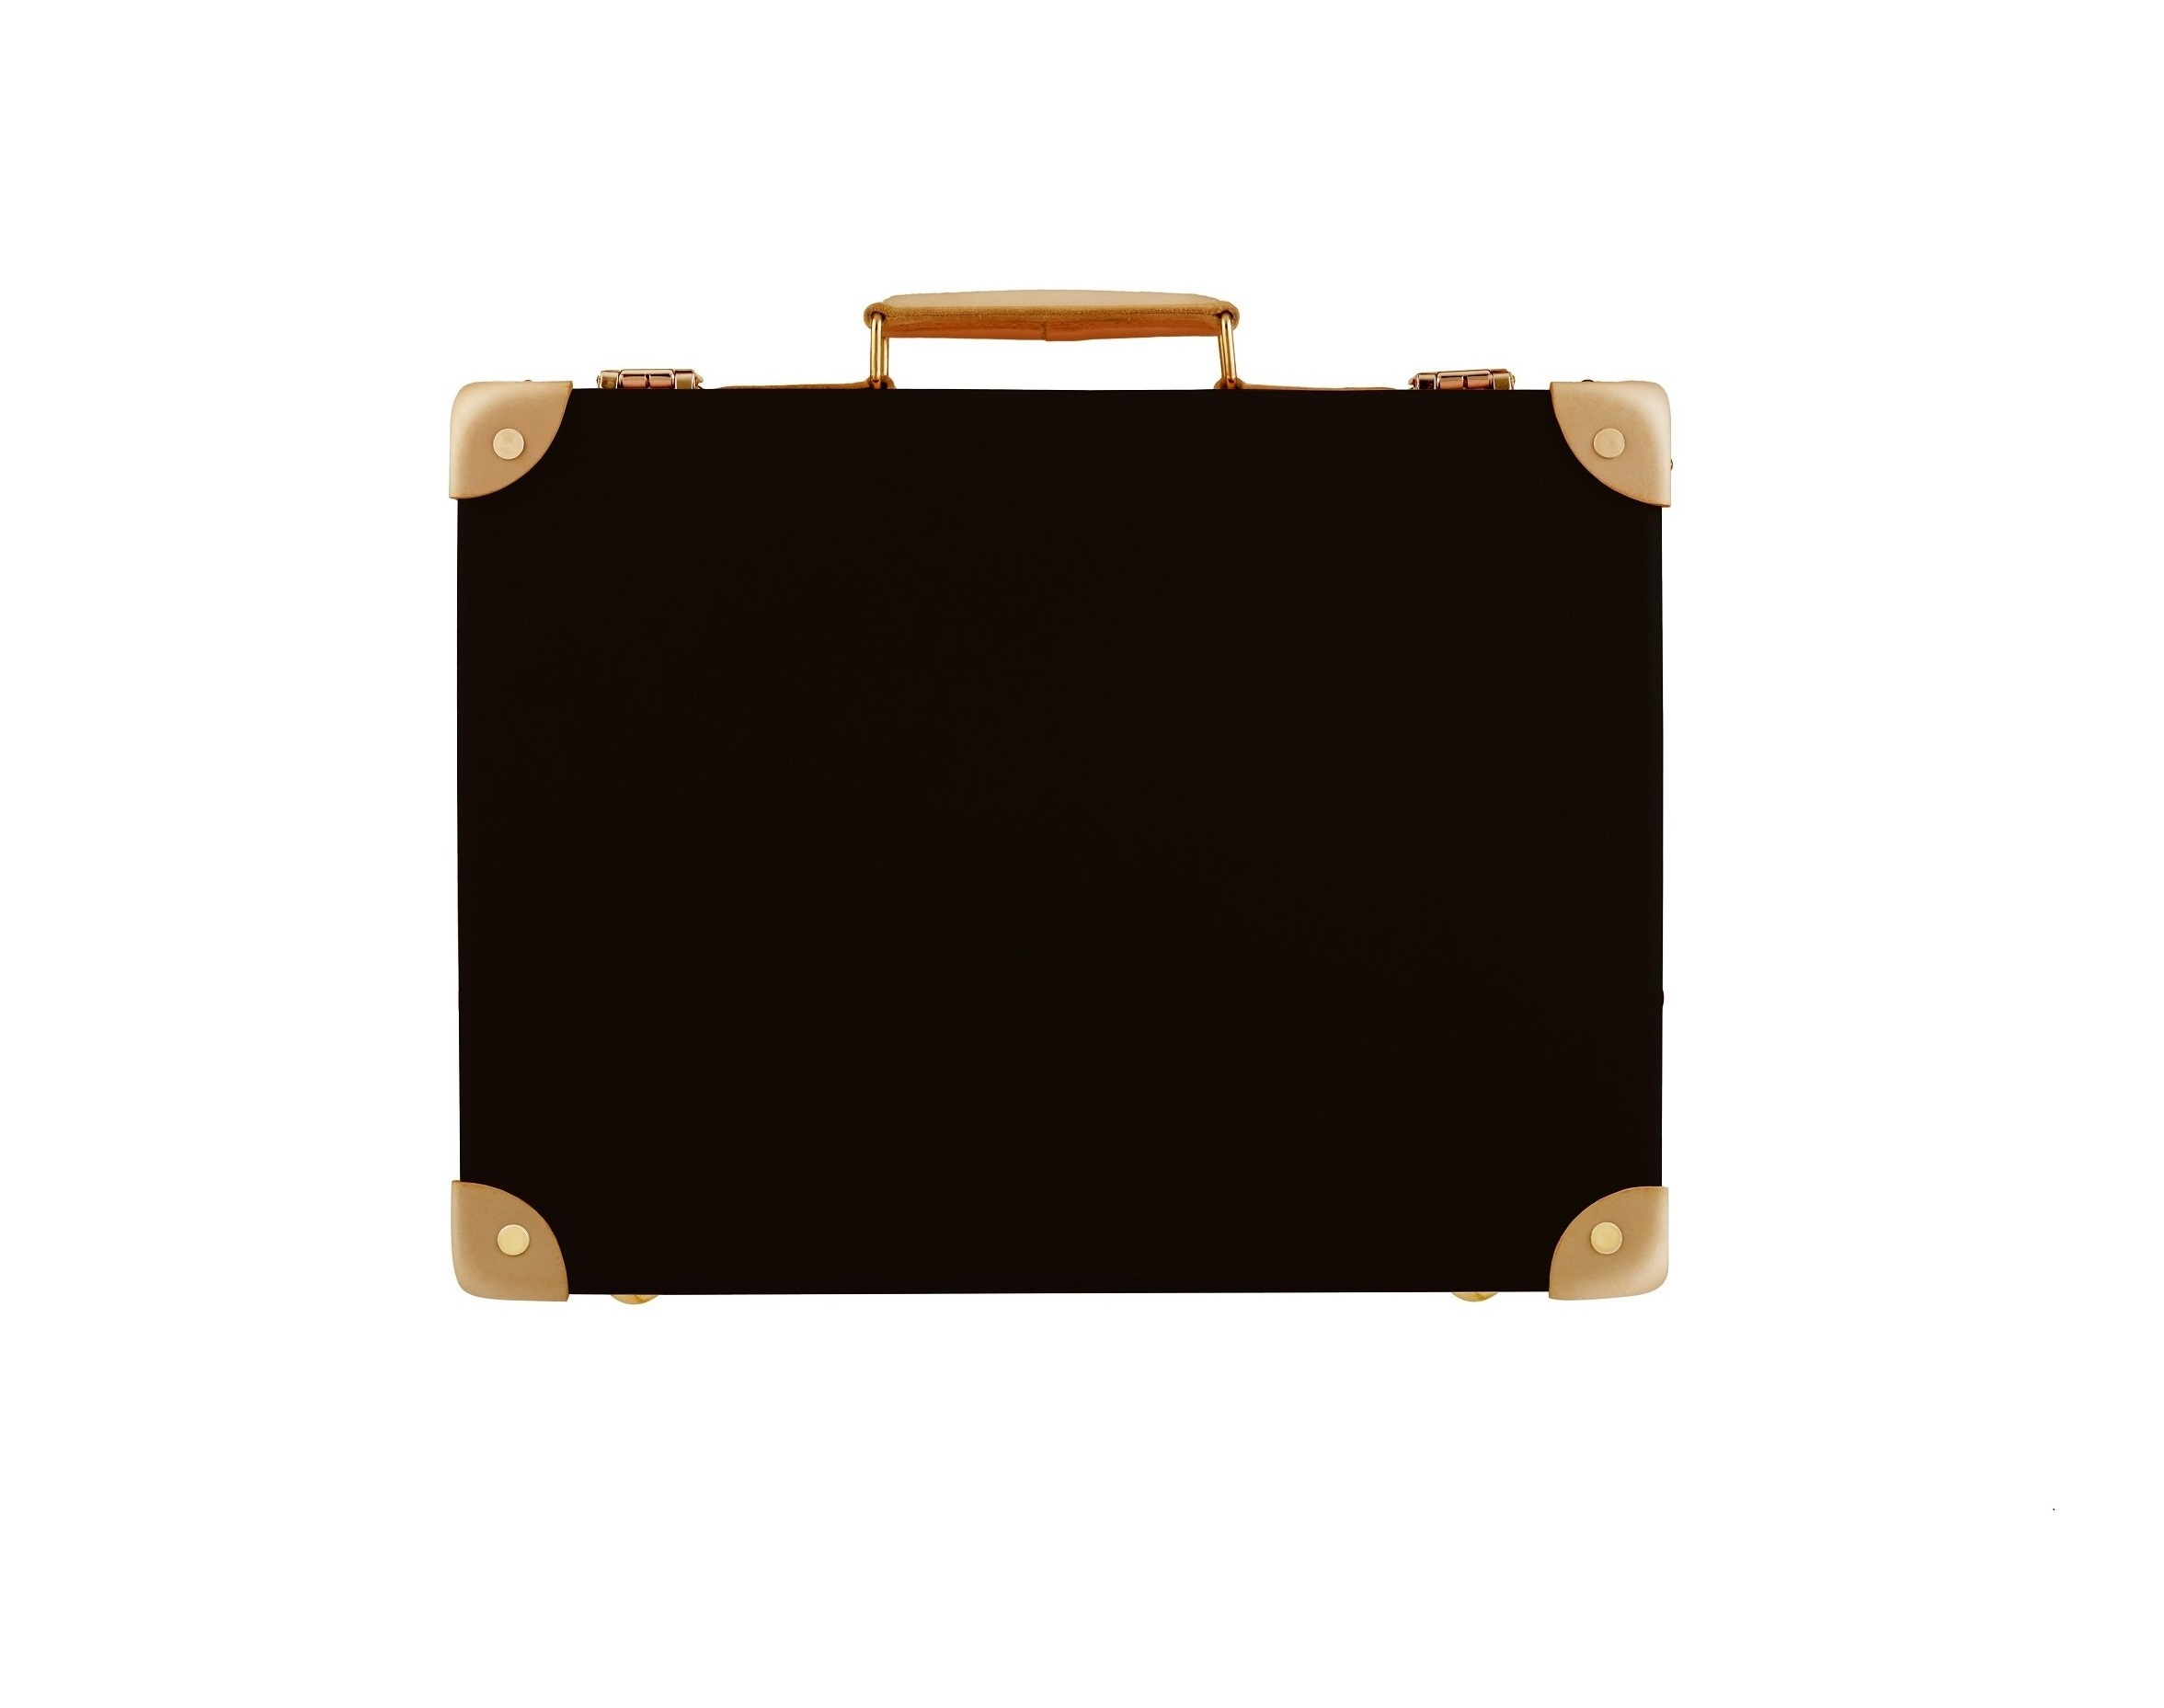 Globe-Trotter Special Edition 'Safari' Collection attache case in Colonial Brown with Natural leather trim. From $880